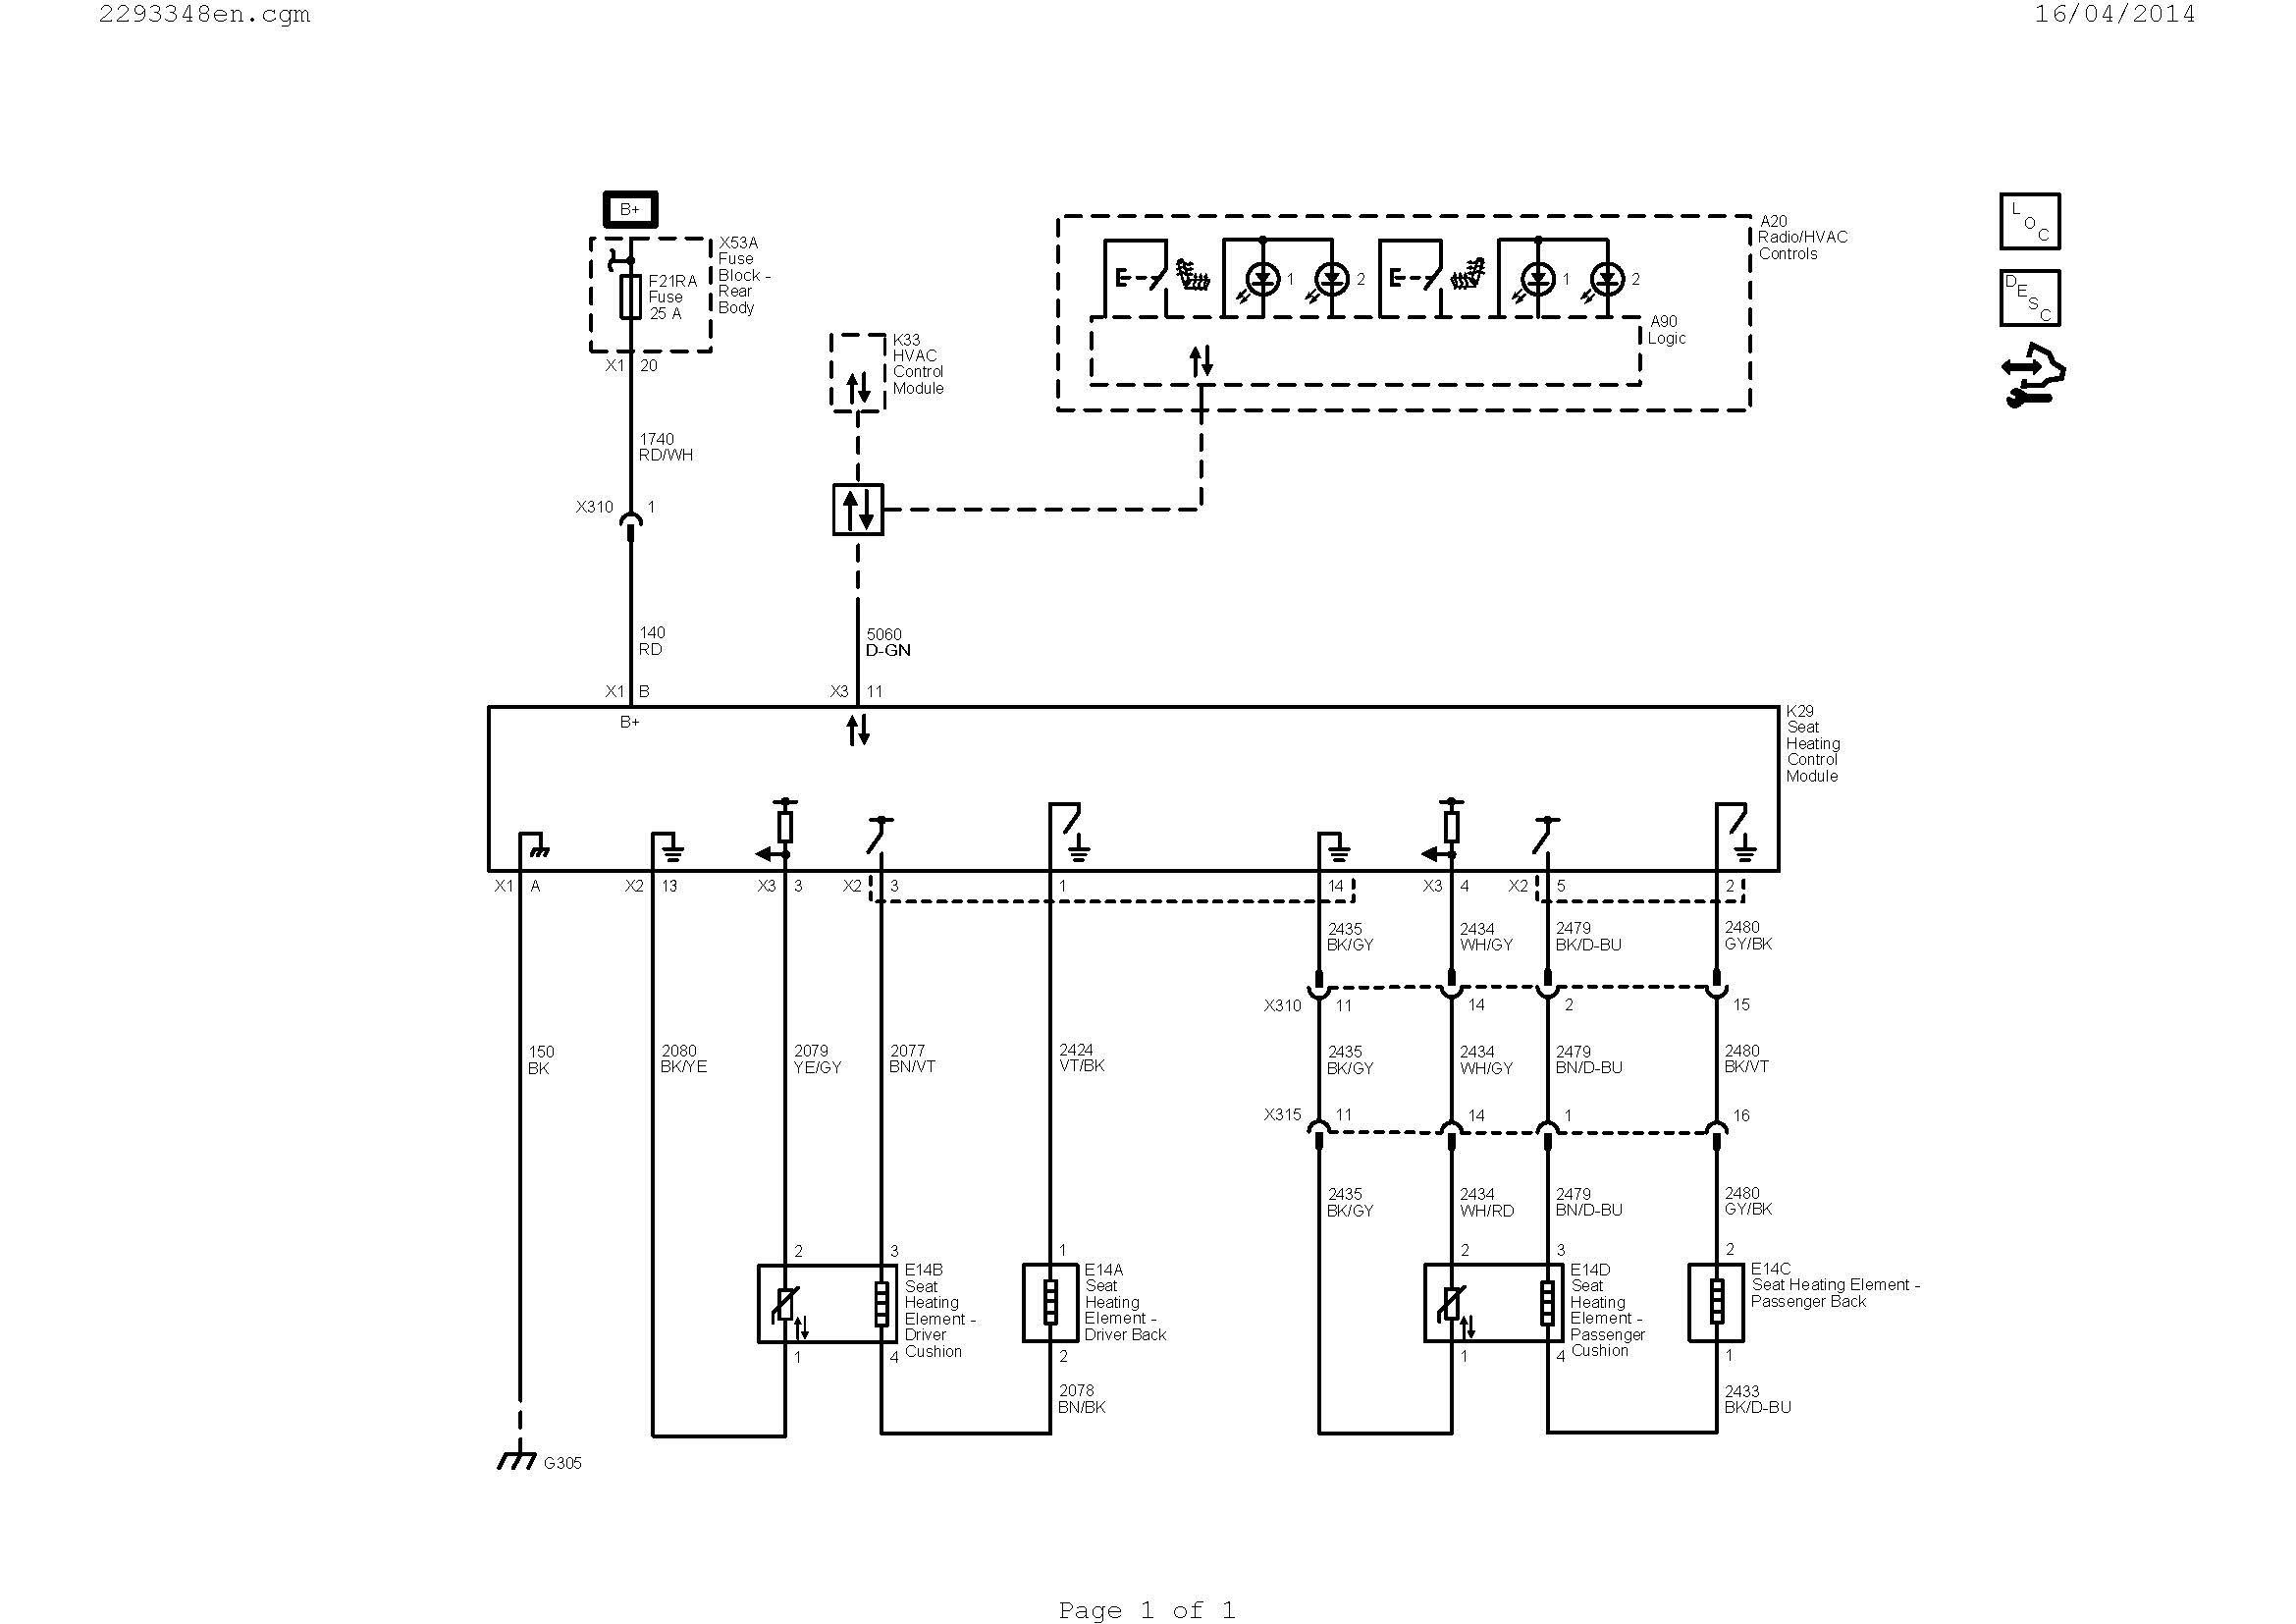 wiring diagrams stoves switches and thermostats macspares zr 6039  electric stove wiring diagram on wiring diagram for  zr 6039  electric stove wiring diagram